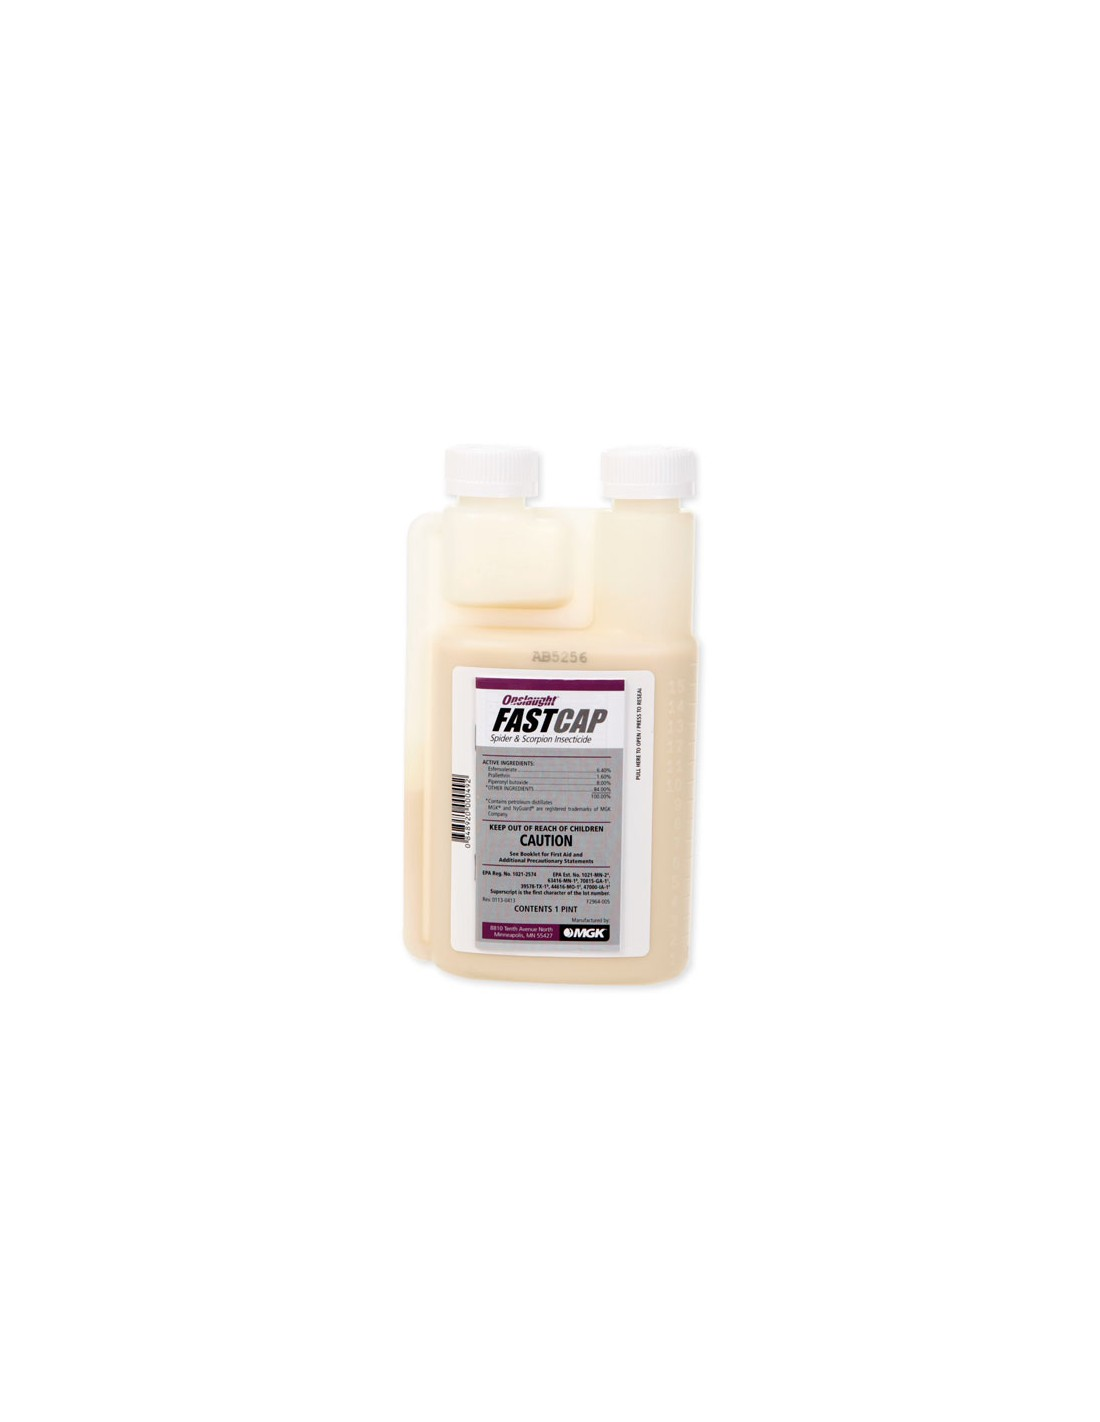 Can Onslaught Fastcap be sprayed on house siding for Asian beetles and Box elder? We have vinyl and painted surfac